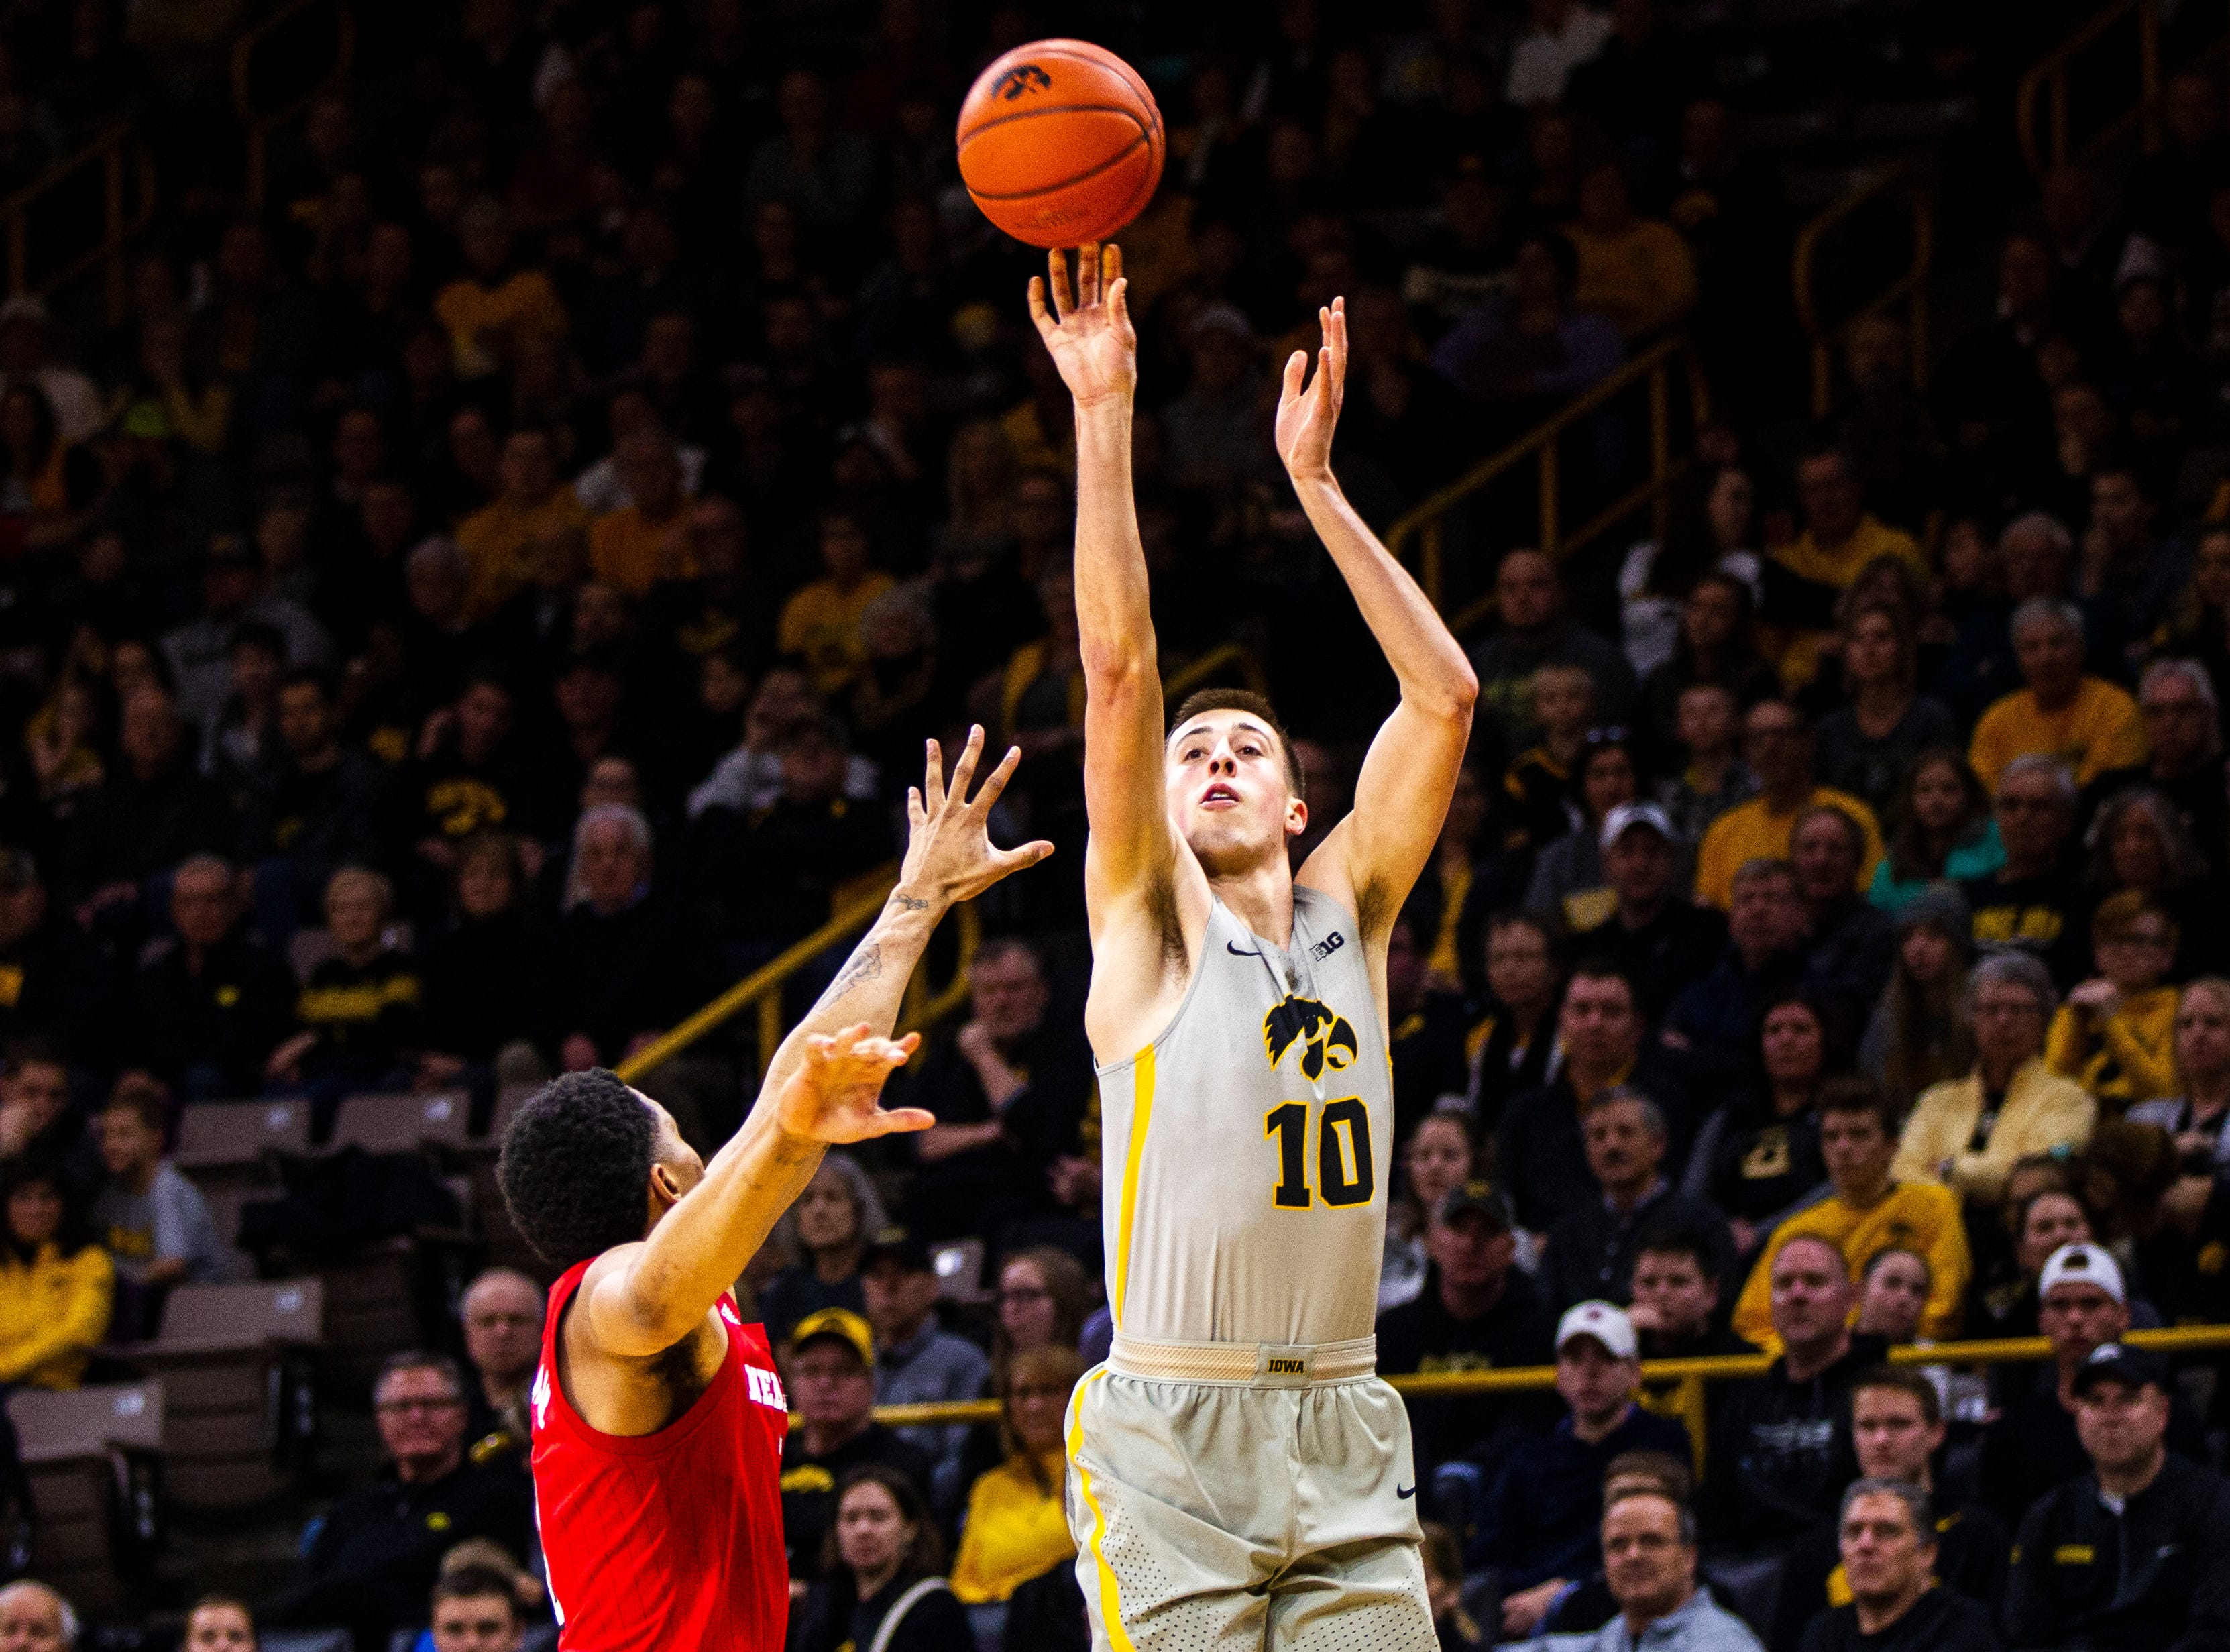 Iowa guard Joe Wieskamp (10) shoots a 3-point basket during a NCAA Big Ten Conference men's basketball game on Sunday, Jan. 6, 2019, at the Carver-Hawkeye Arena in Iowa City, Iowa.